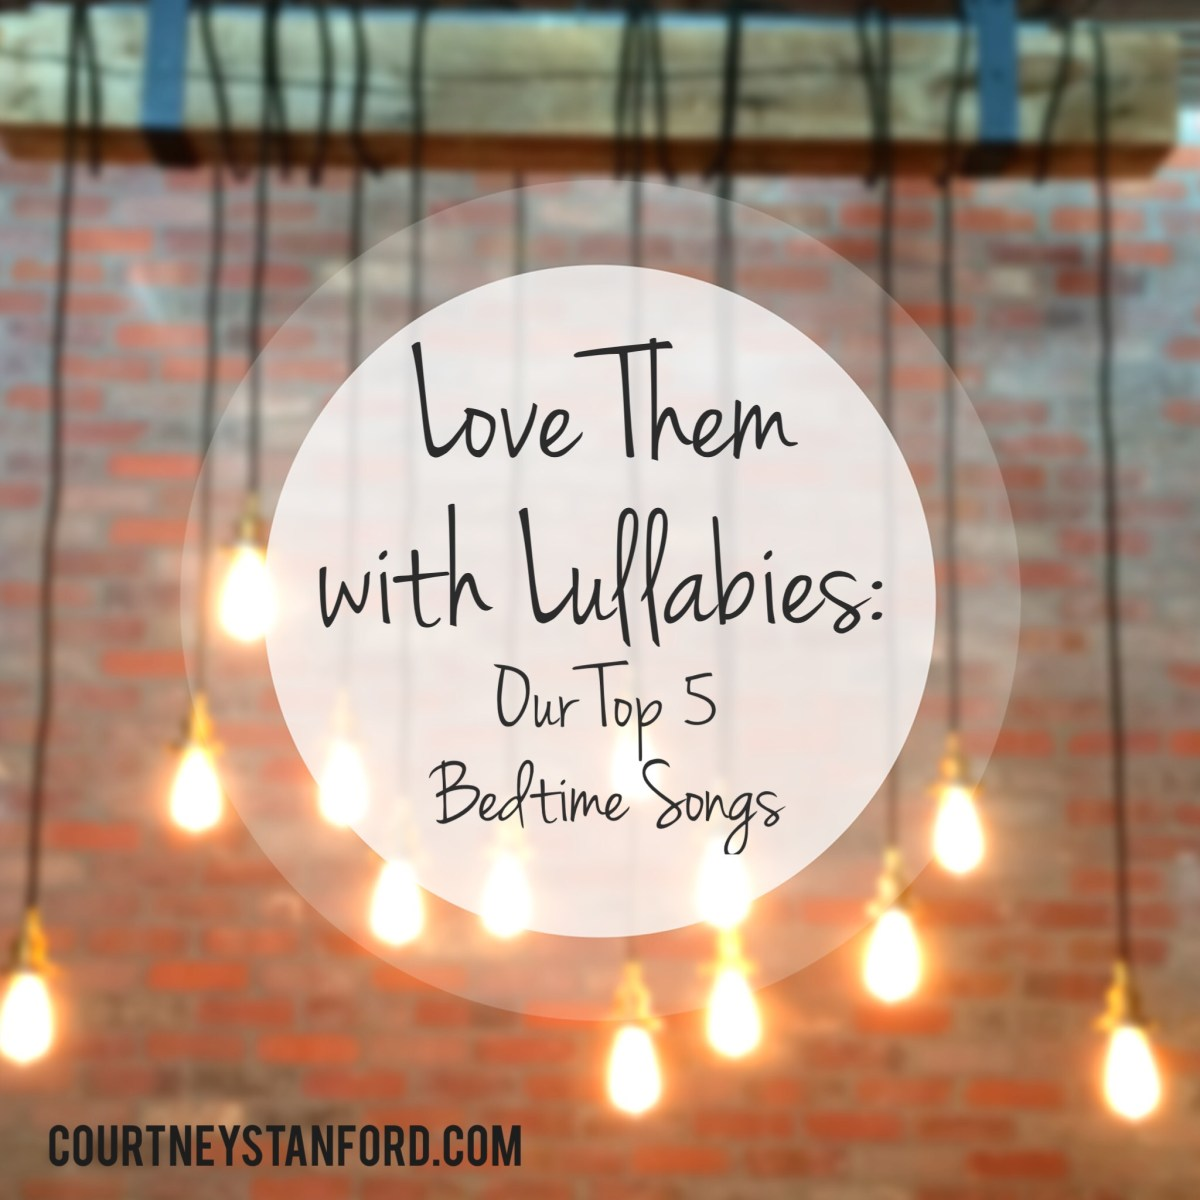 Love Them with Lullabies: Our Top 5 Bedtime Songs